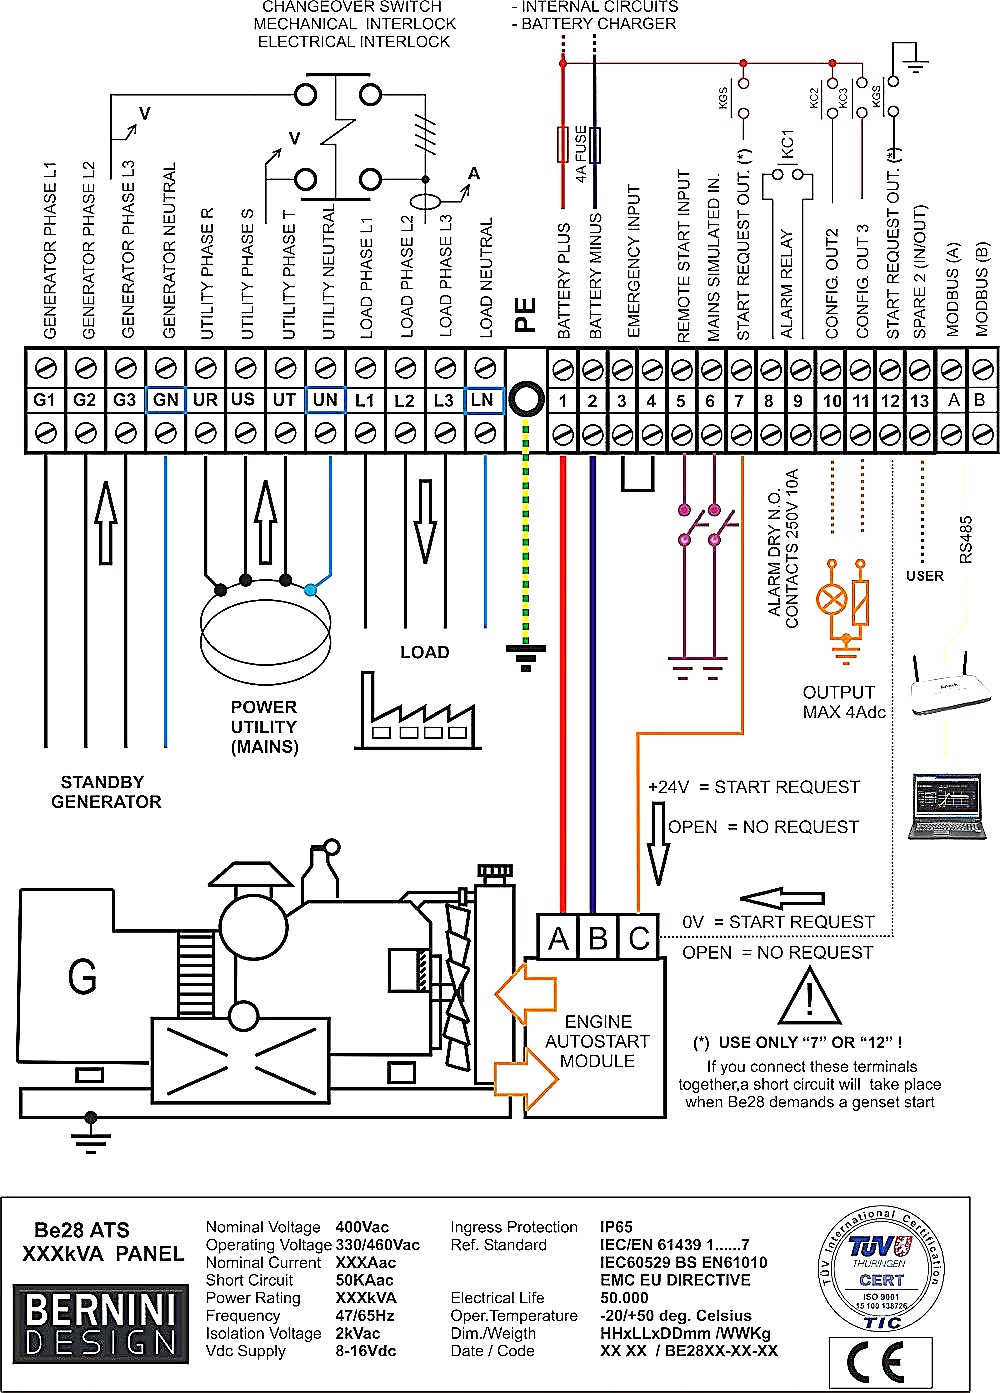 generac battery charger wiring diagram Download-Generac Battery Charger Wiring Diagram Awesome Generac Automatic Transfer Switch Wiring Diagram Simple Bright 1-n